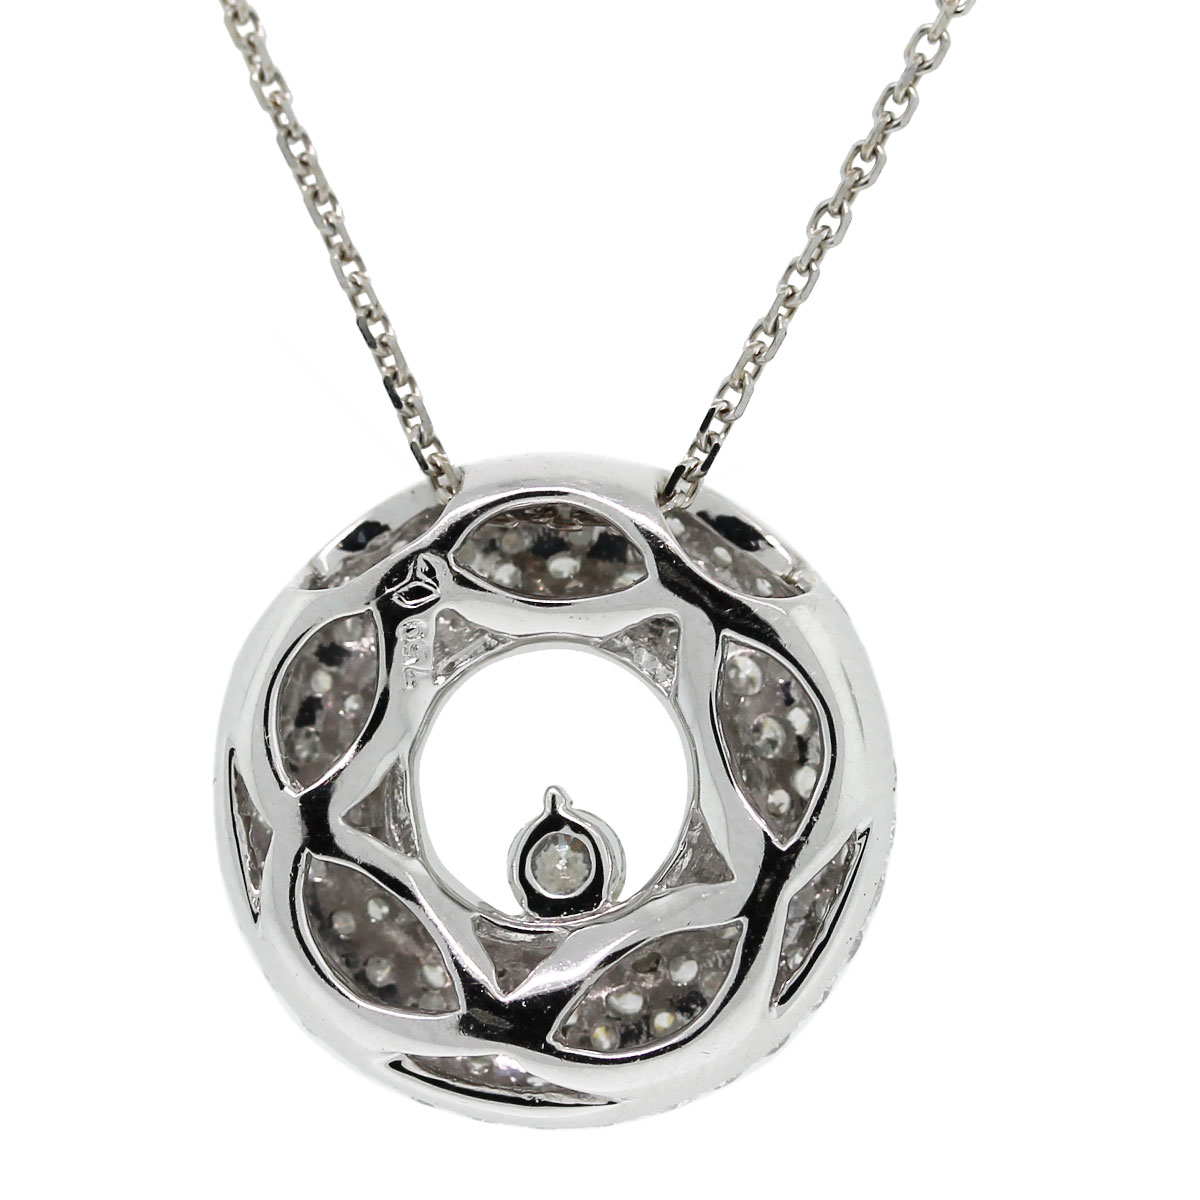 Check out this gorgeous 18kt White Gold Pave Set Diamond Disc Pendant on 14kt White Gold Chain